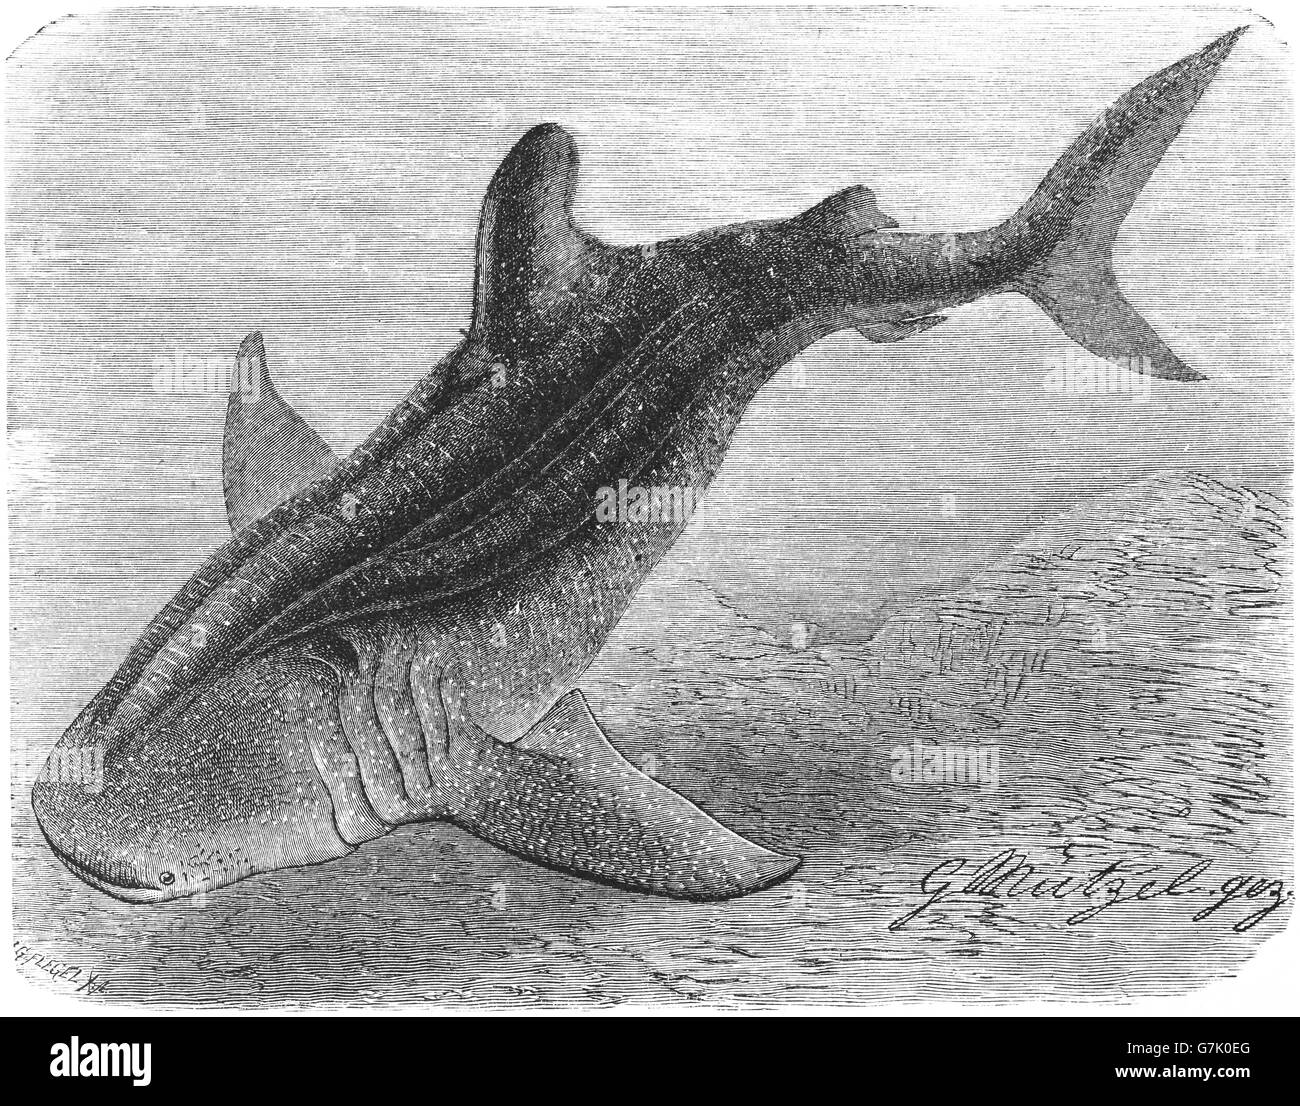 Shark Drawing Stockfotos & Shark Drawing Bilder - Alamy